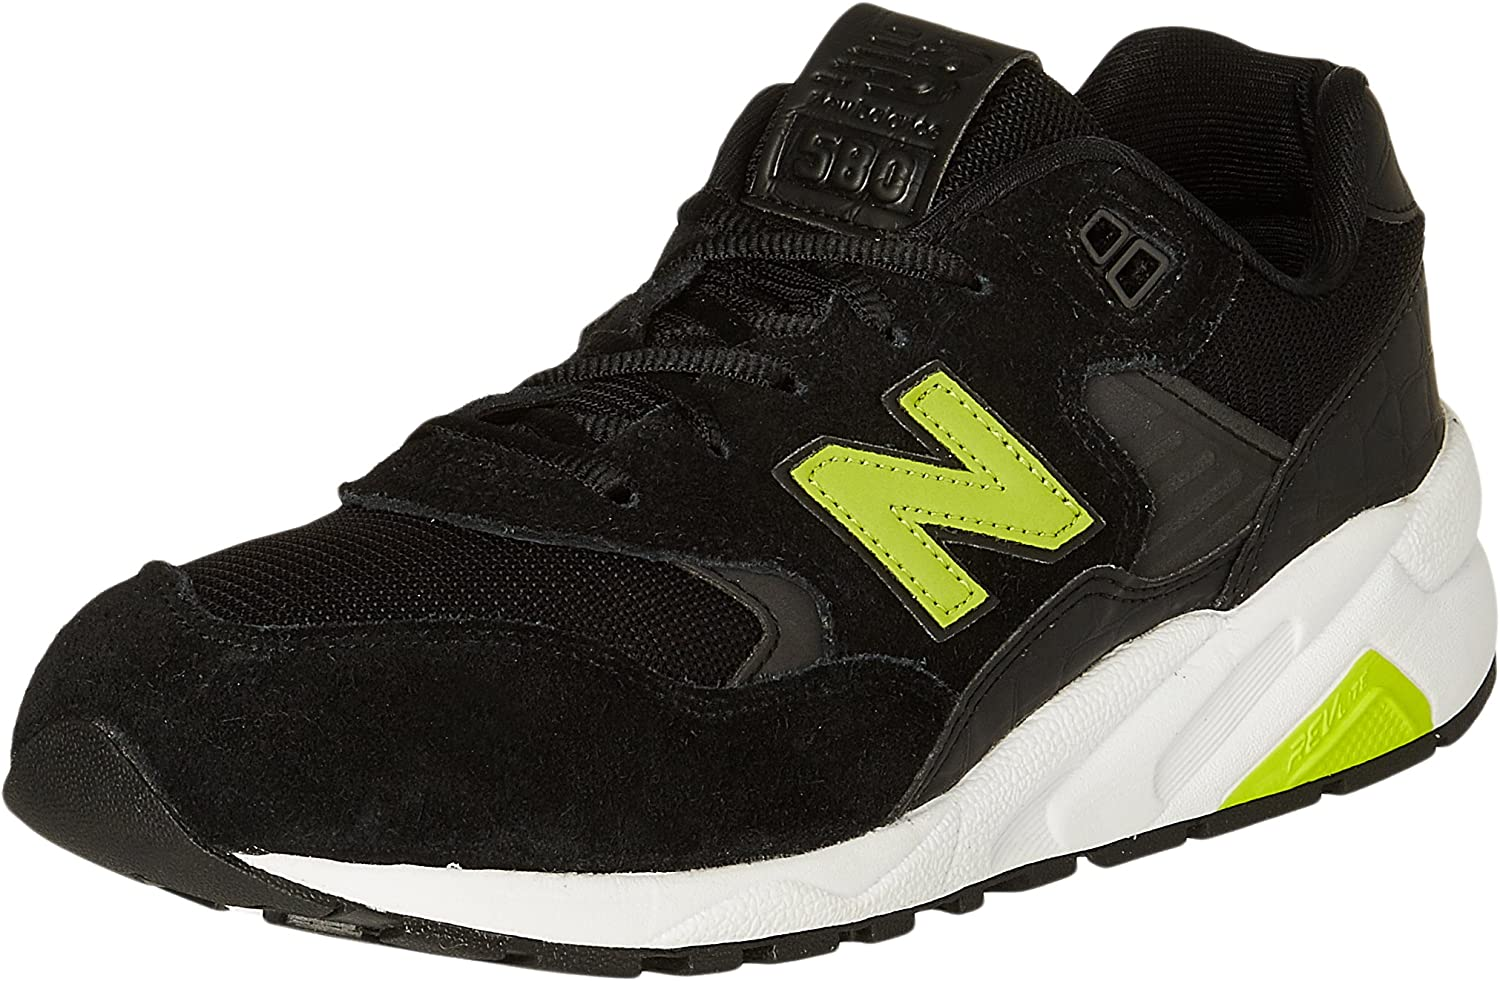 New Balance Men's Mrt580nf Trainers